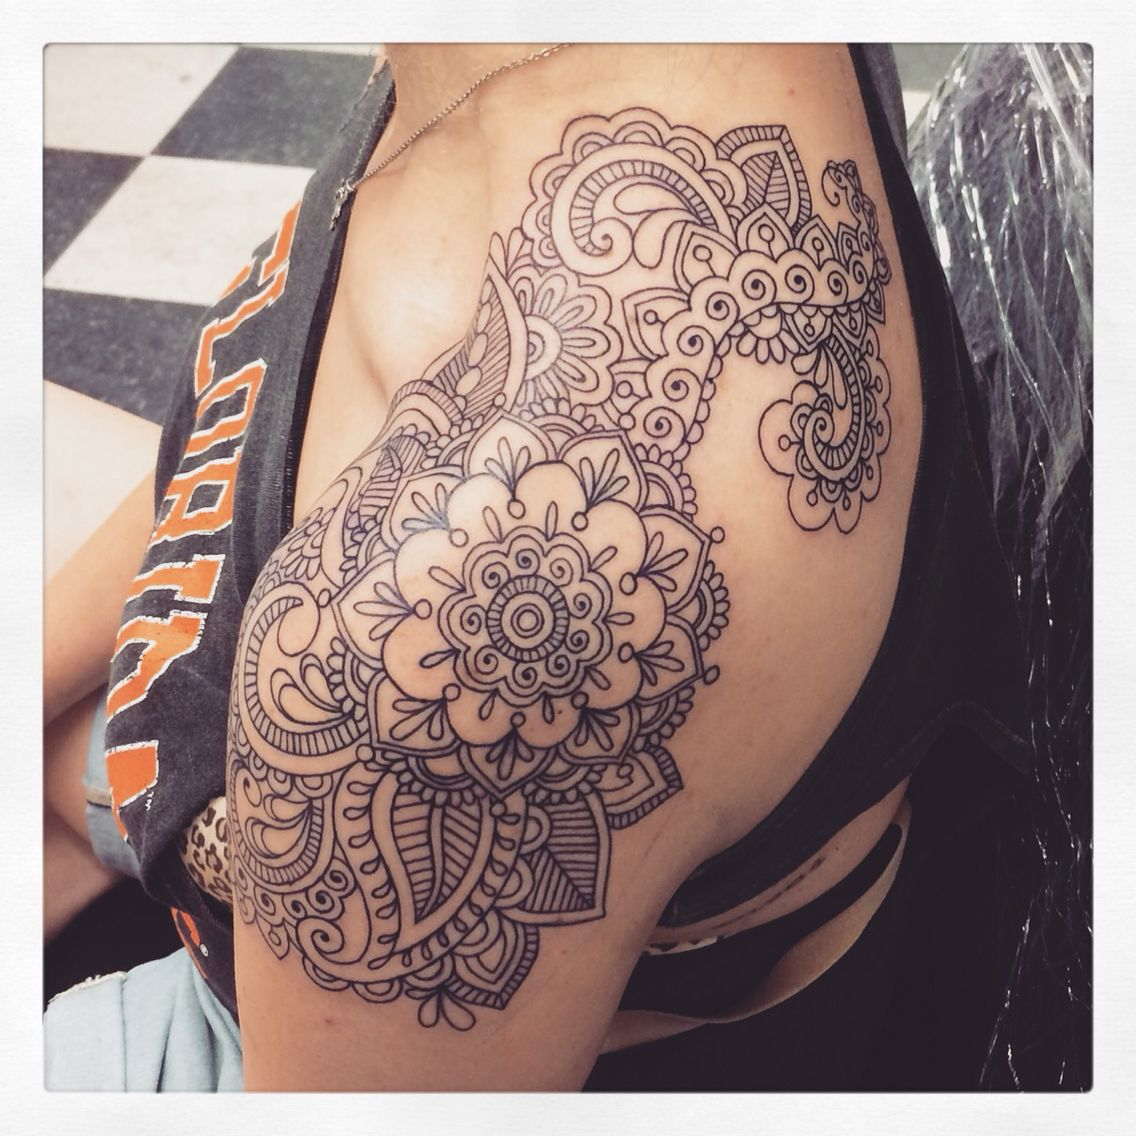 Henna Shoulder Tattoo Designs: Paisley, Mandala, Boho, Tattoo, Girls With Tattoos